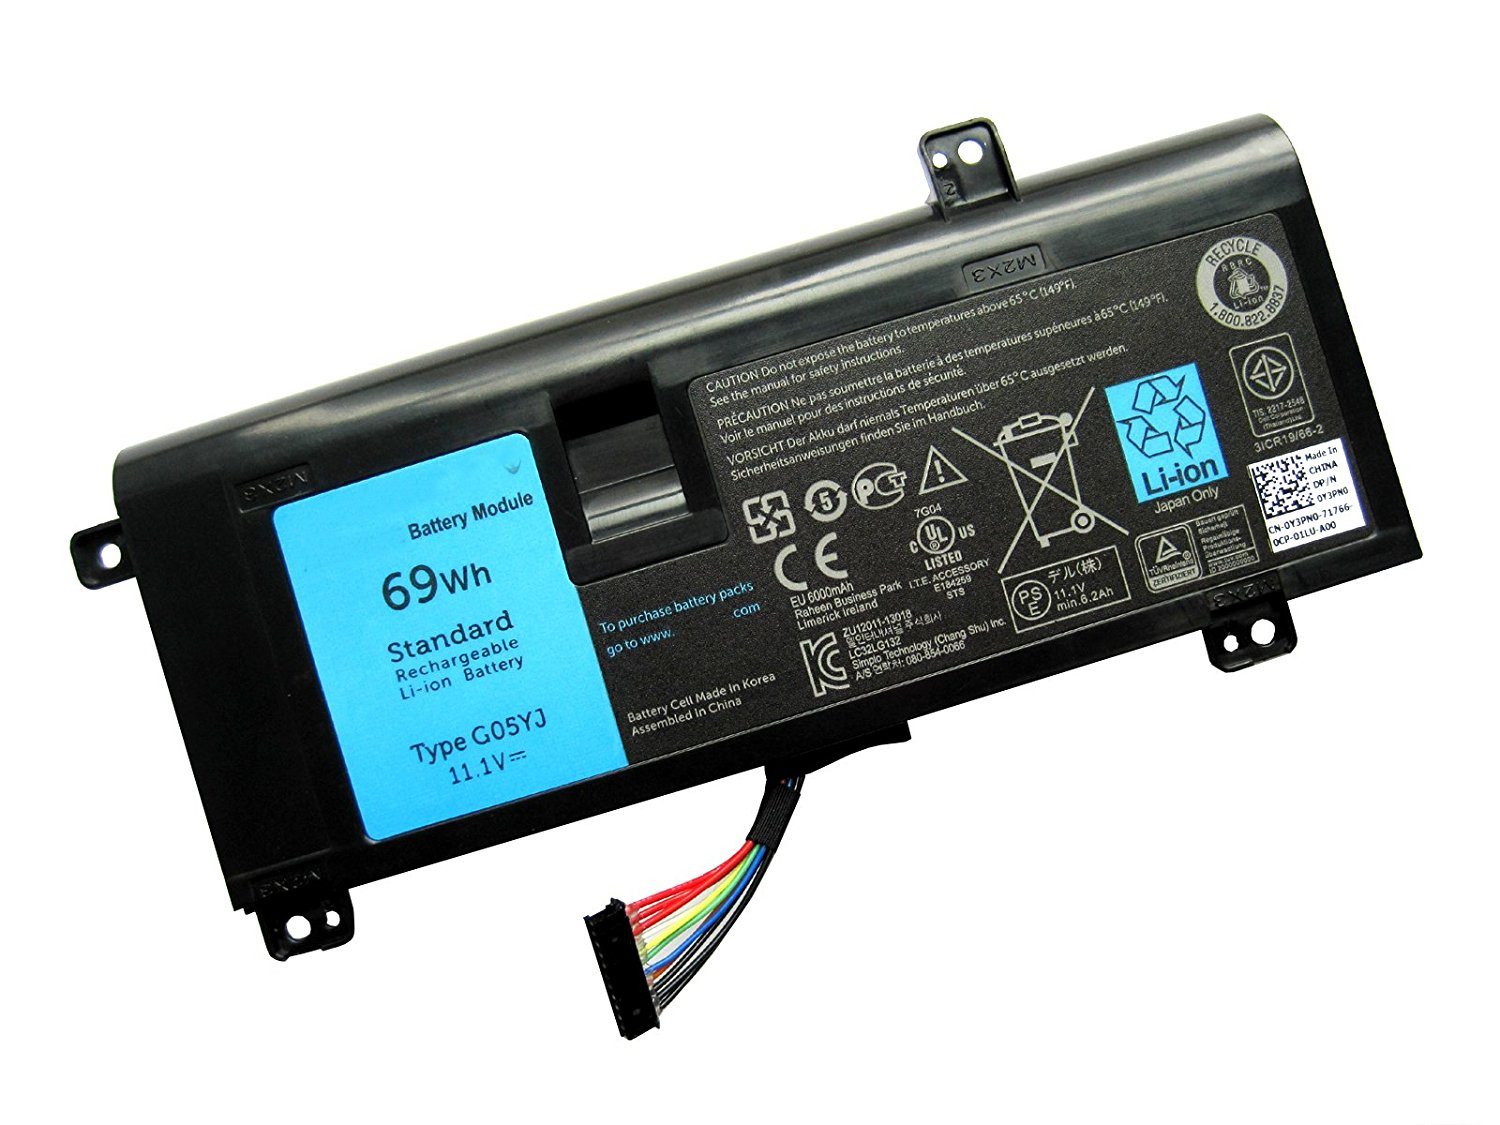 ZWXJ Laptop Battery G05YJ(11.1V 69Wh) for Dell Alienware 14 A14 M14X R3 R4 Series Alienware 14D-1528 Y3PN0 8X70T